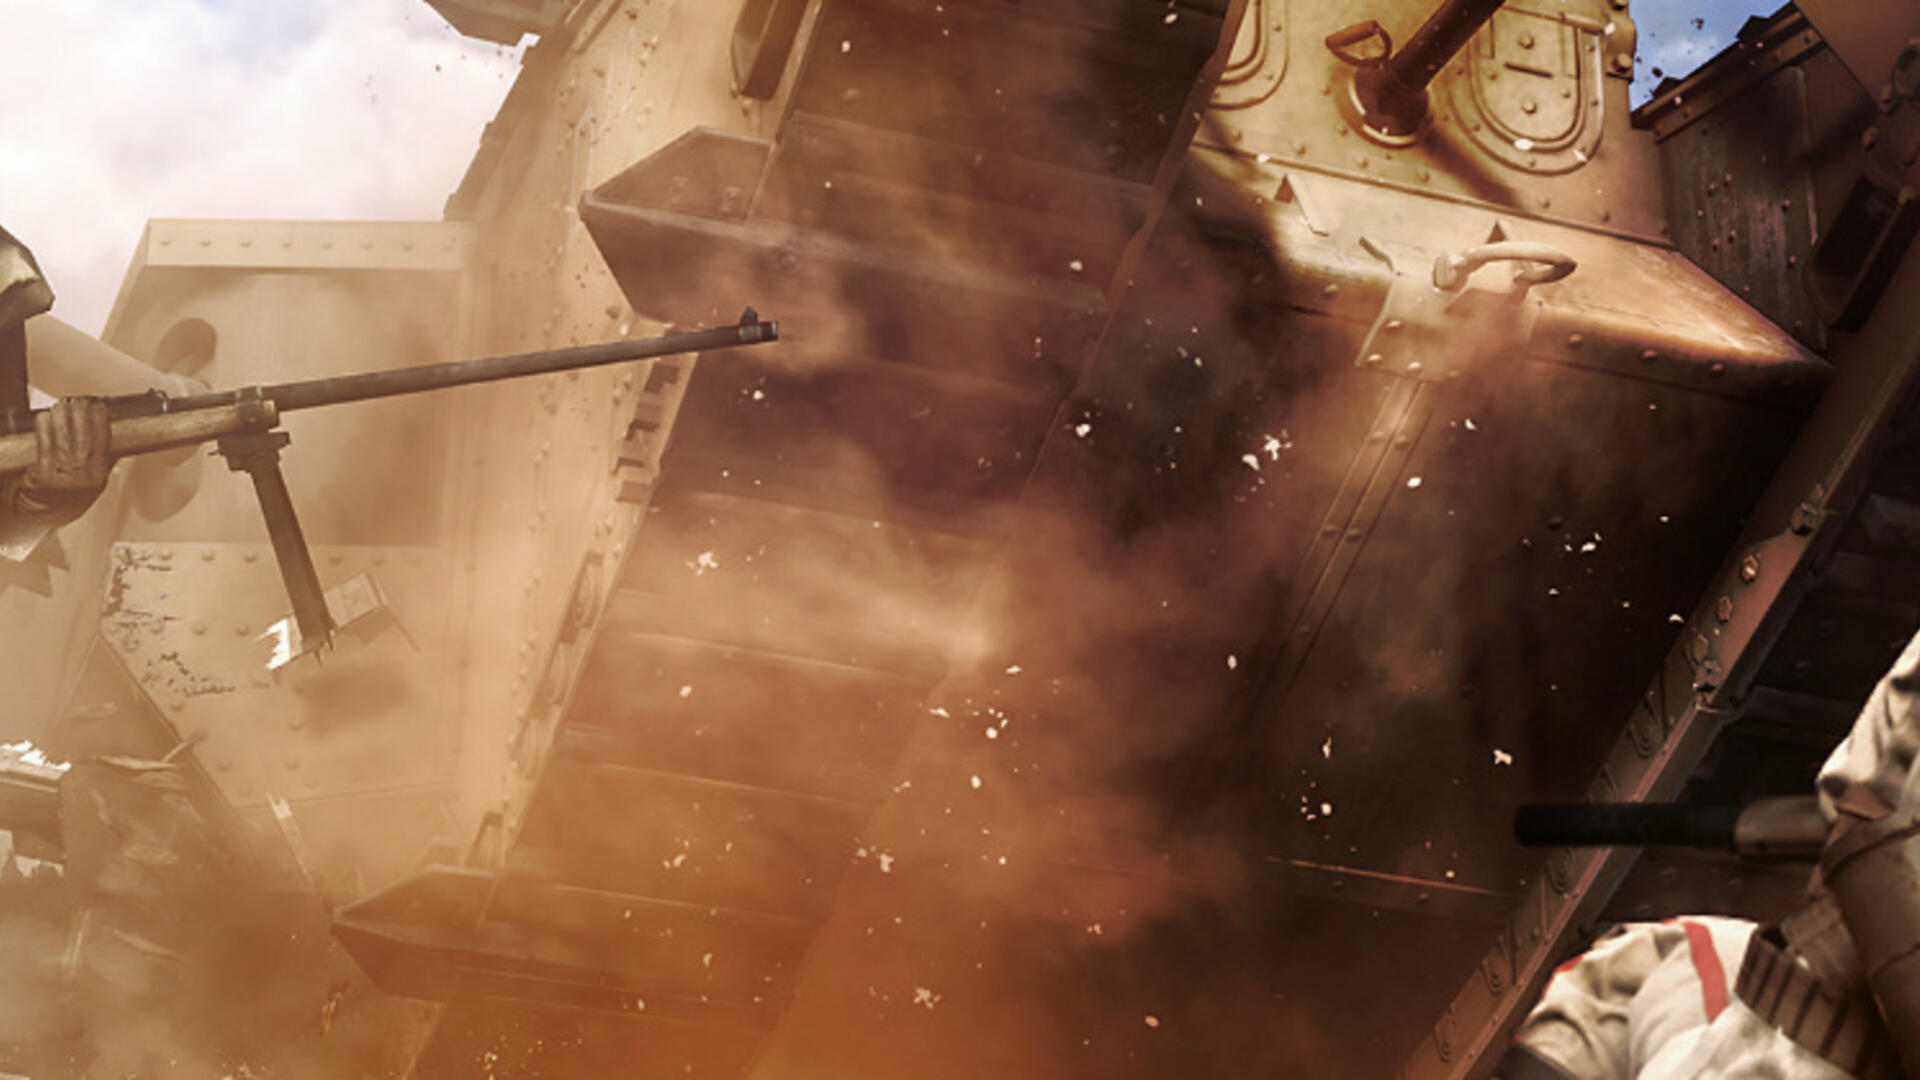 Battlefield 1 Open Beta Brings Players to the Sinai Desert on August 31